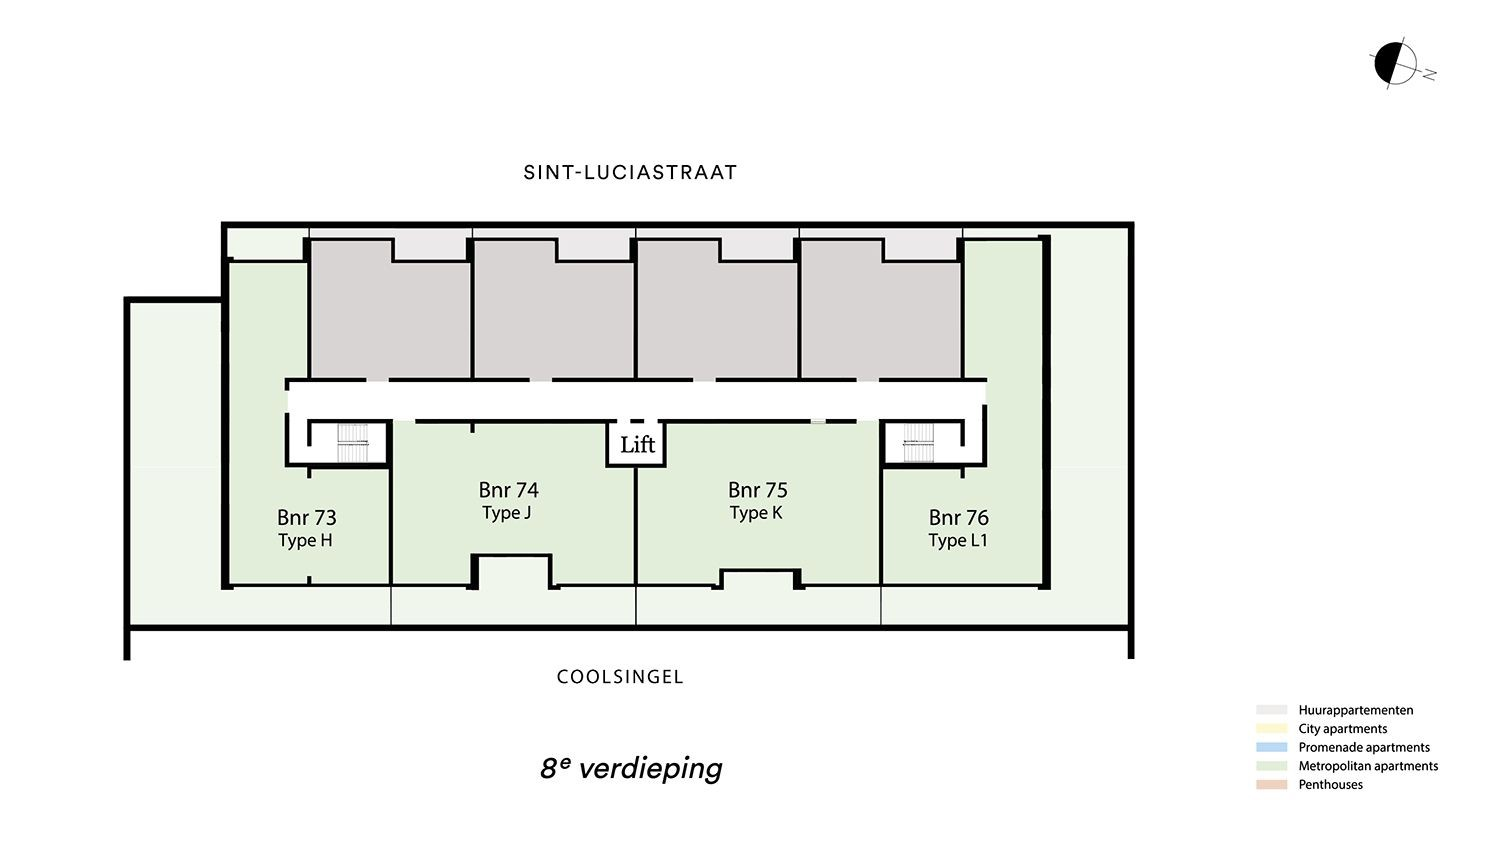 Floor plan verdieping 8 Type H - Metropolitan apartment N� 75 coolsingel